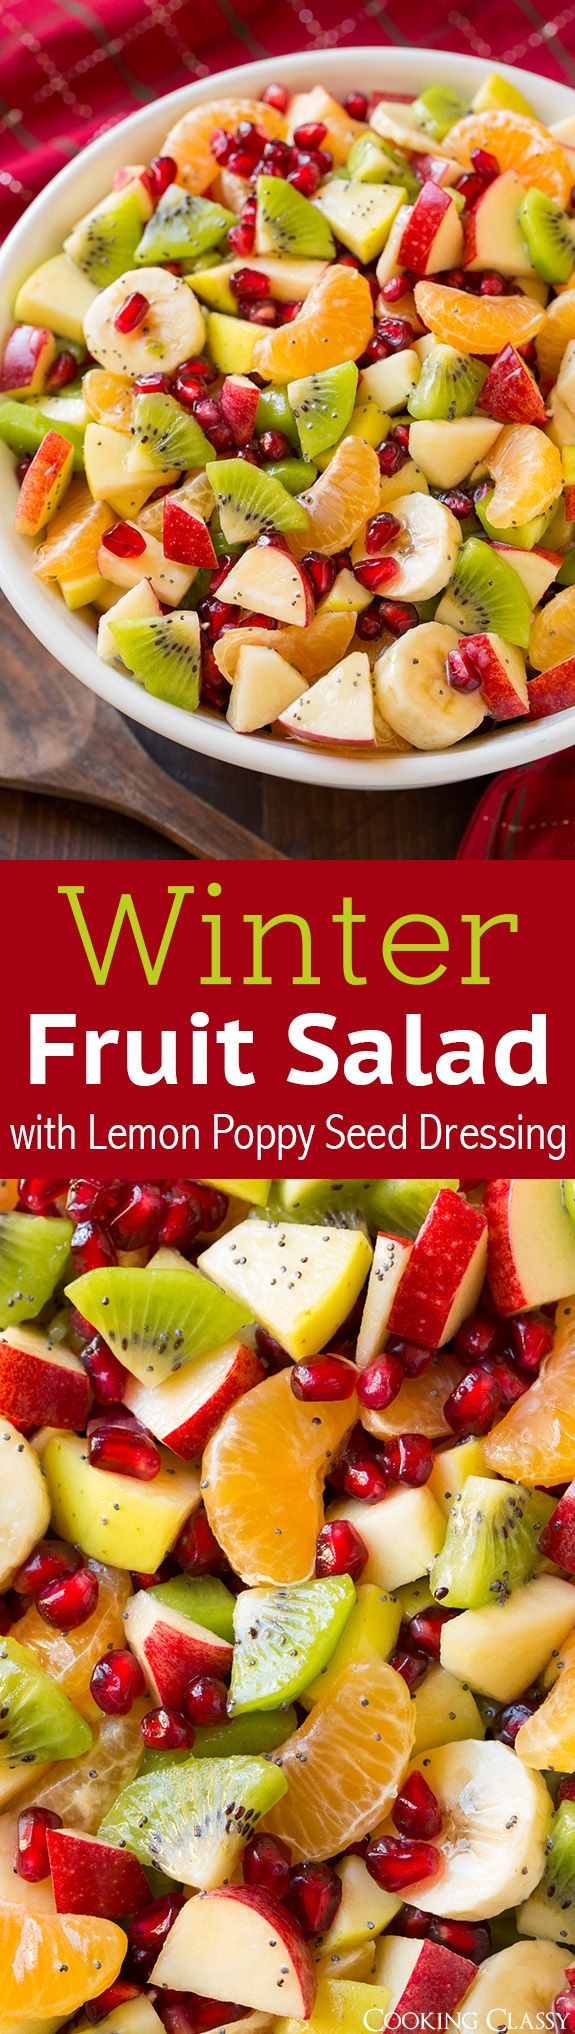 Winter Fruit Salad with Lemon Poppy Seed Dressing - SO GOOD and SO GOOD for you.